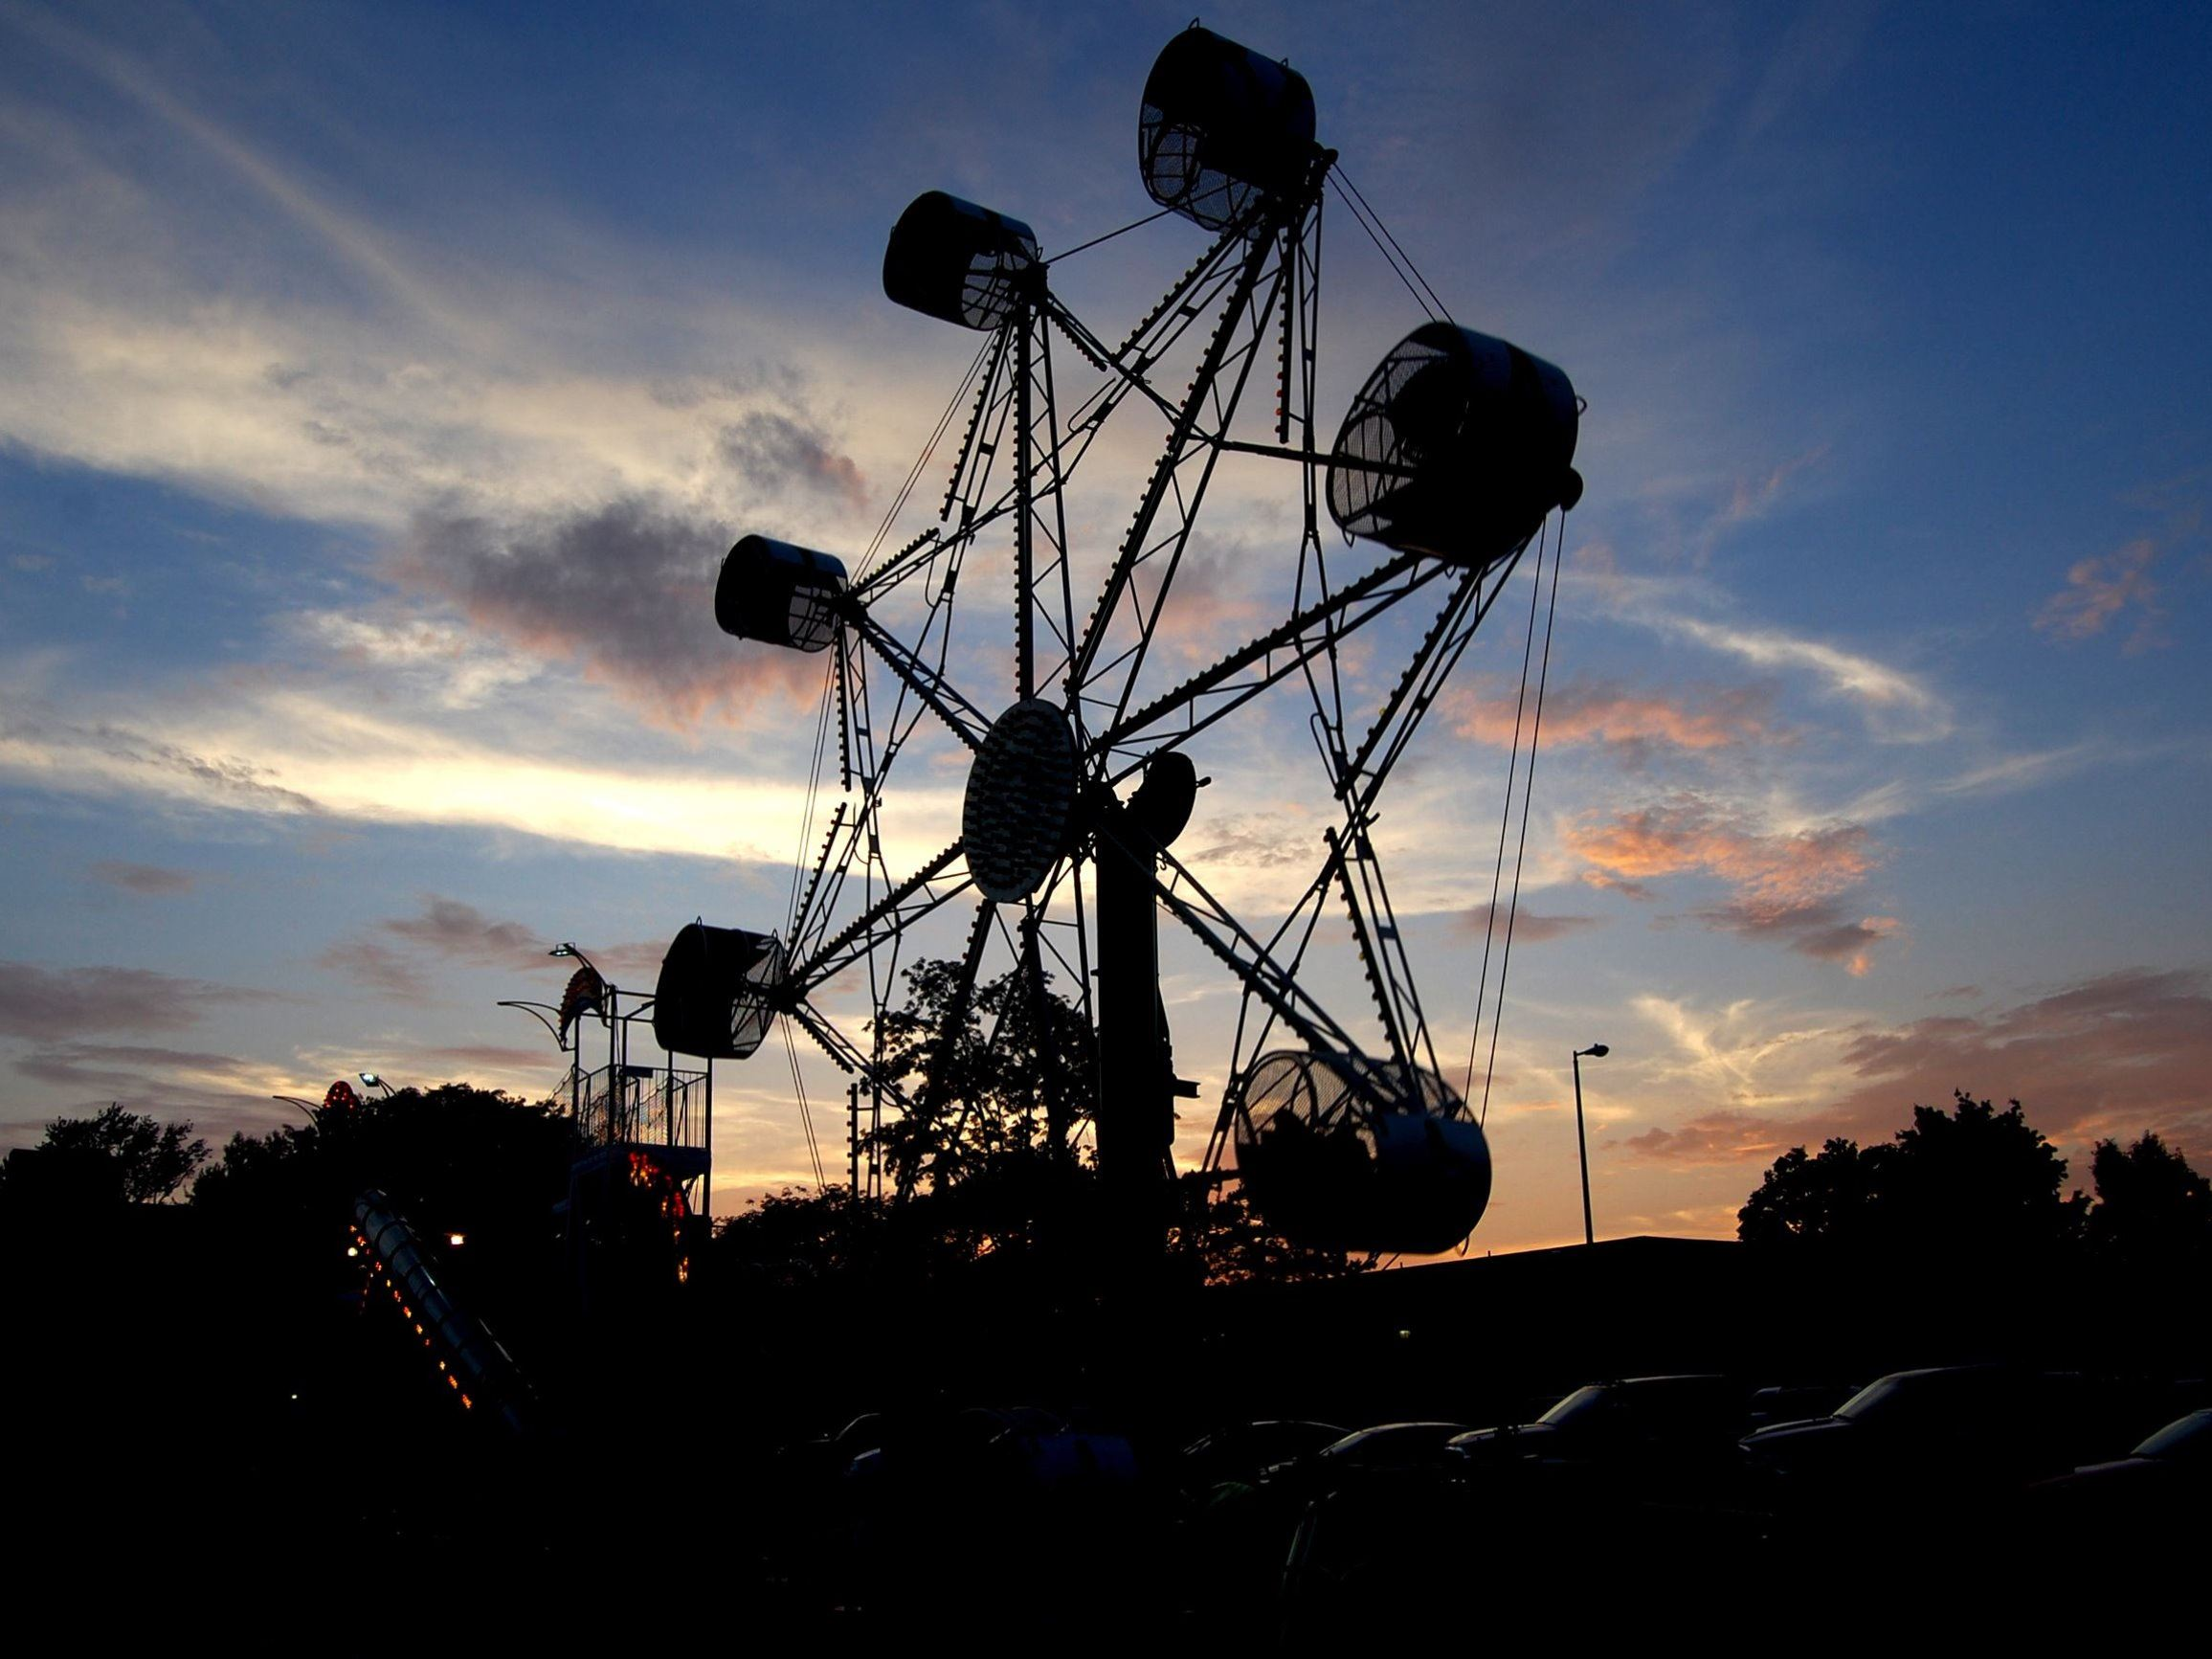 Ferris Wheel at Grindstone Festival during Sunset